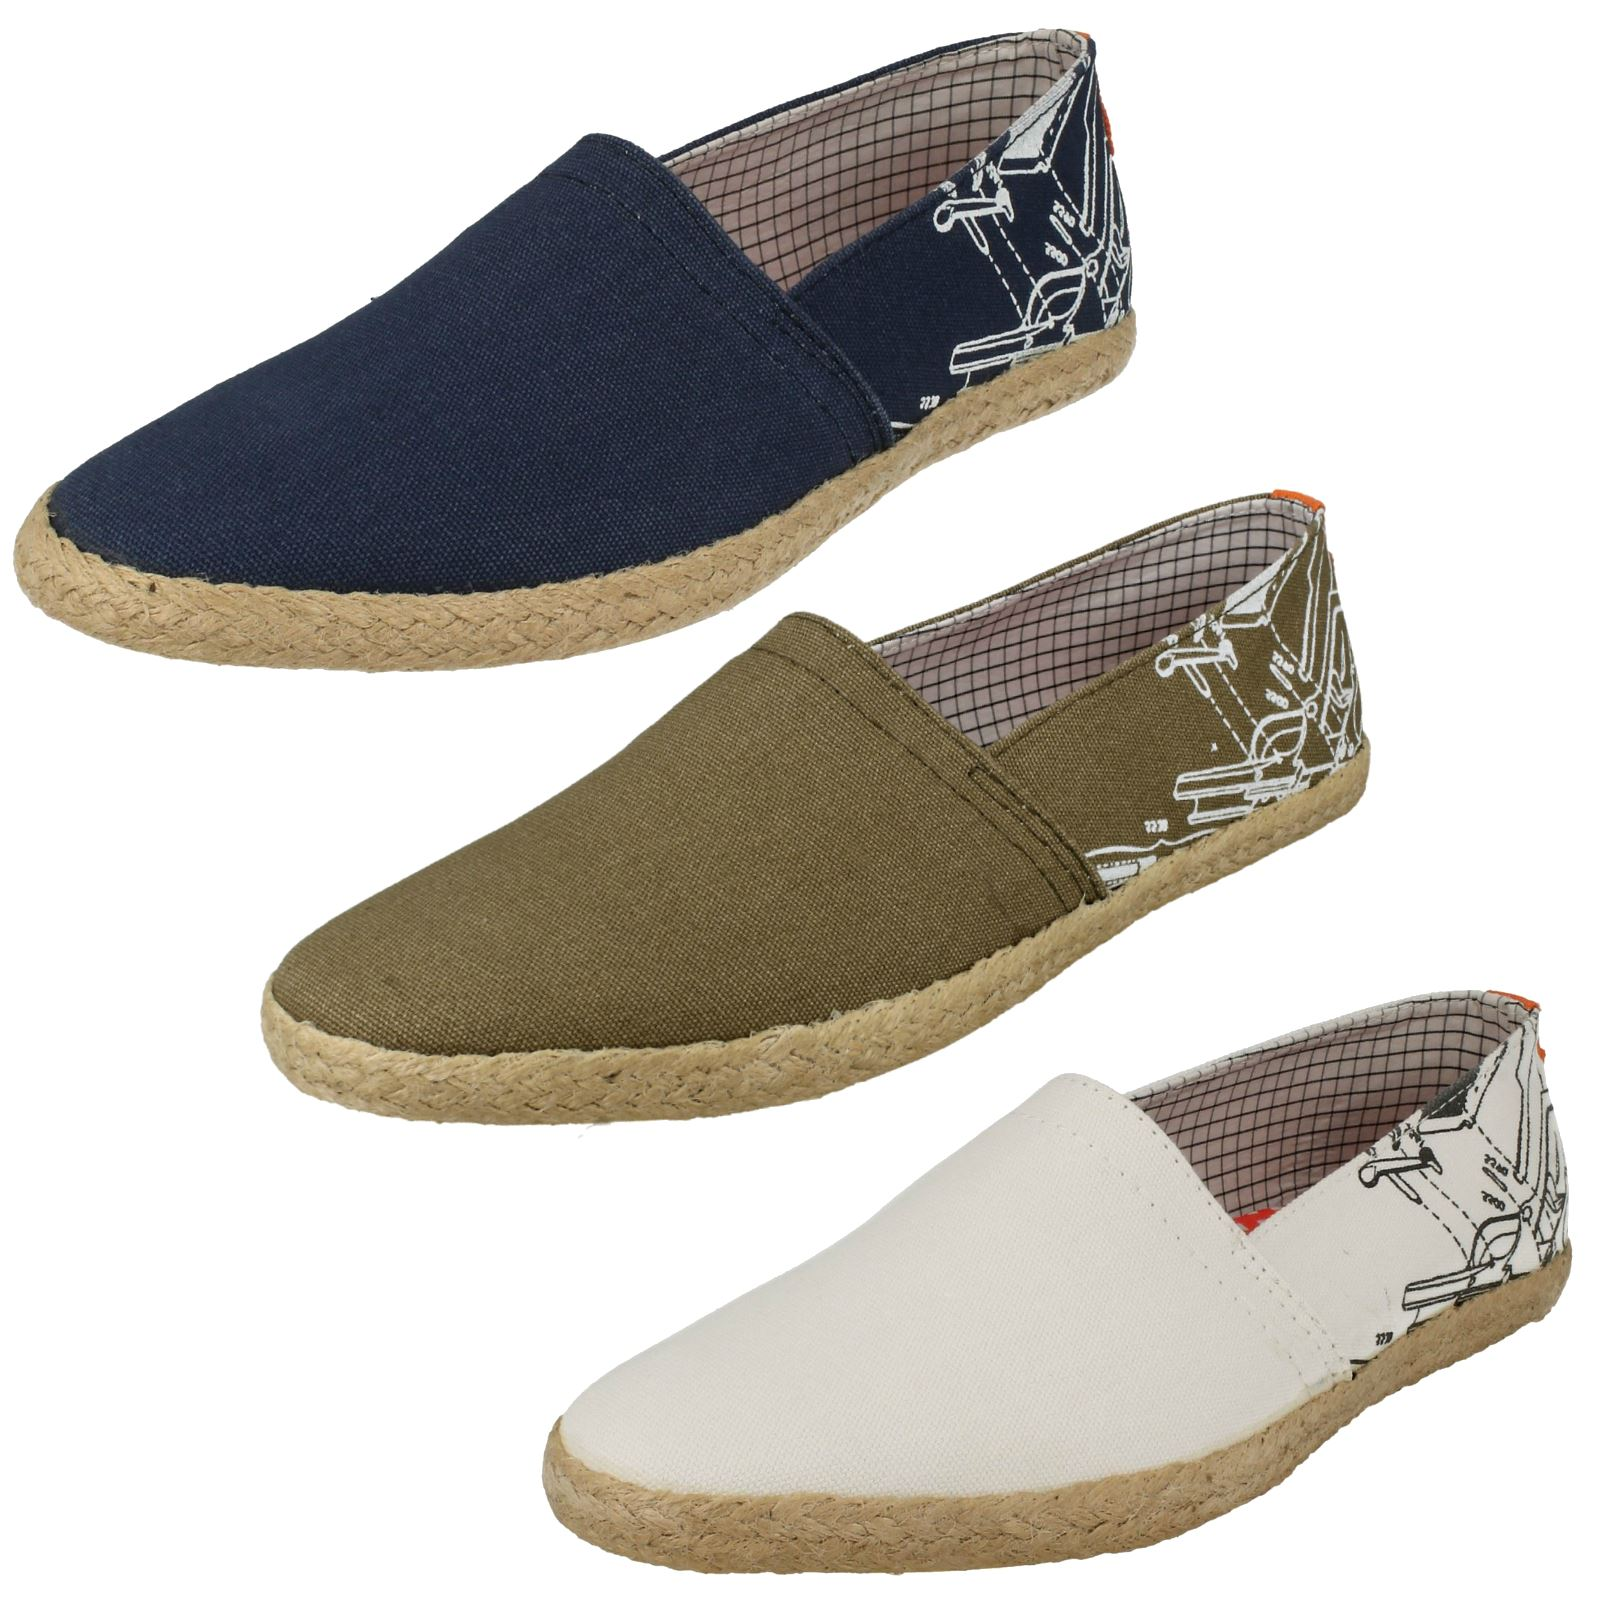 49588c83813f Details about Mens Base London Slip On Rounded Toe Casual Textile Canvas  Shoes Pineapple